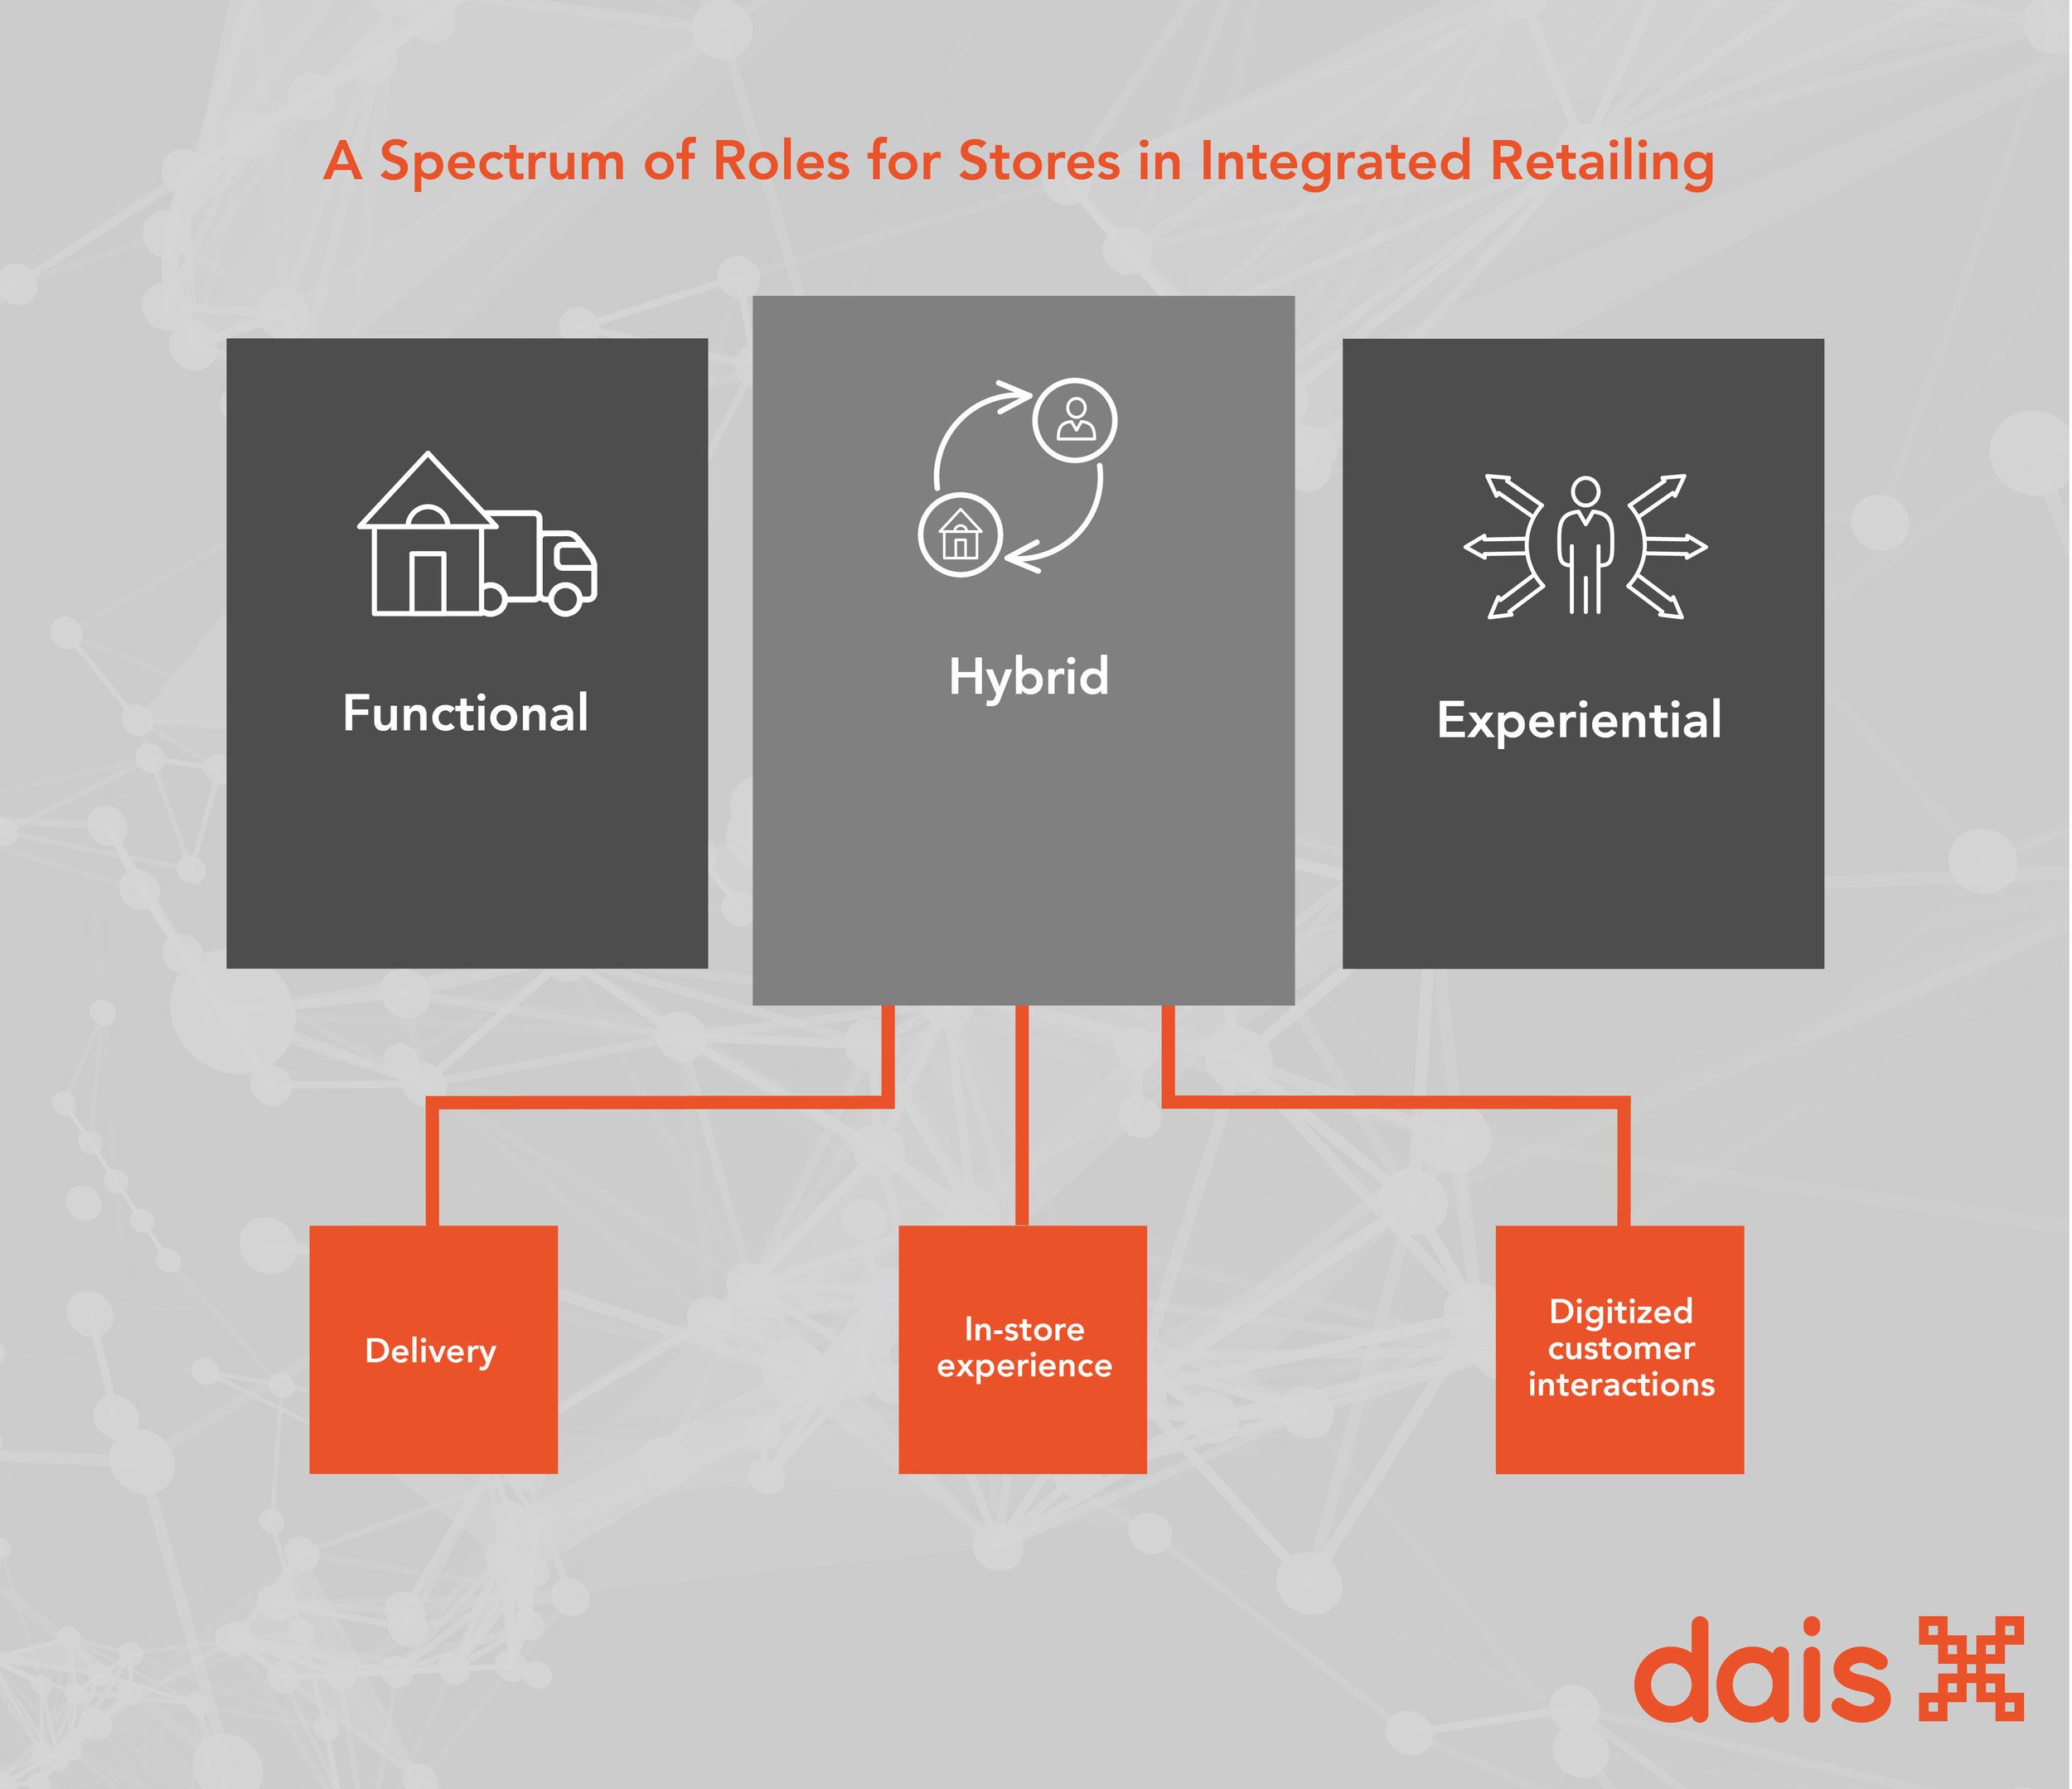 Roles-for-stores-integrated-retail.jpg